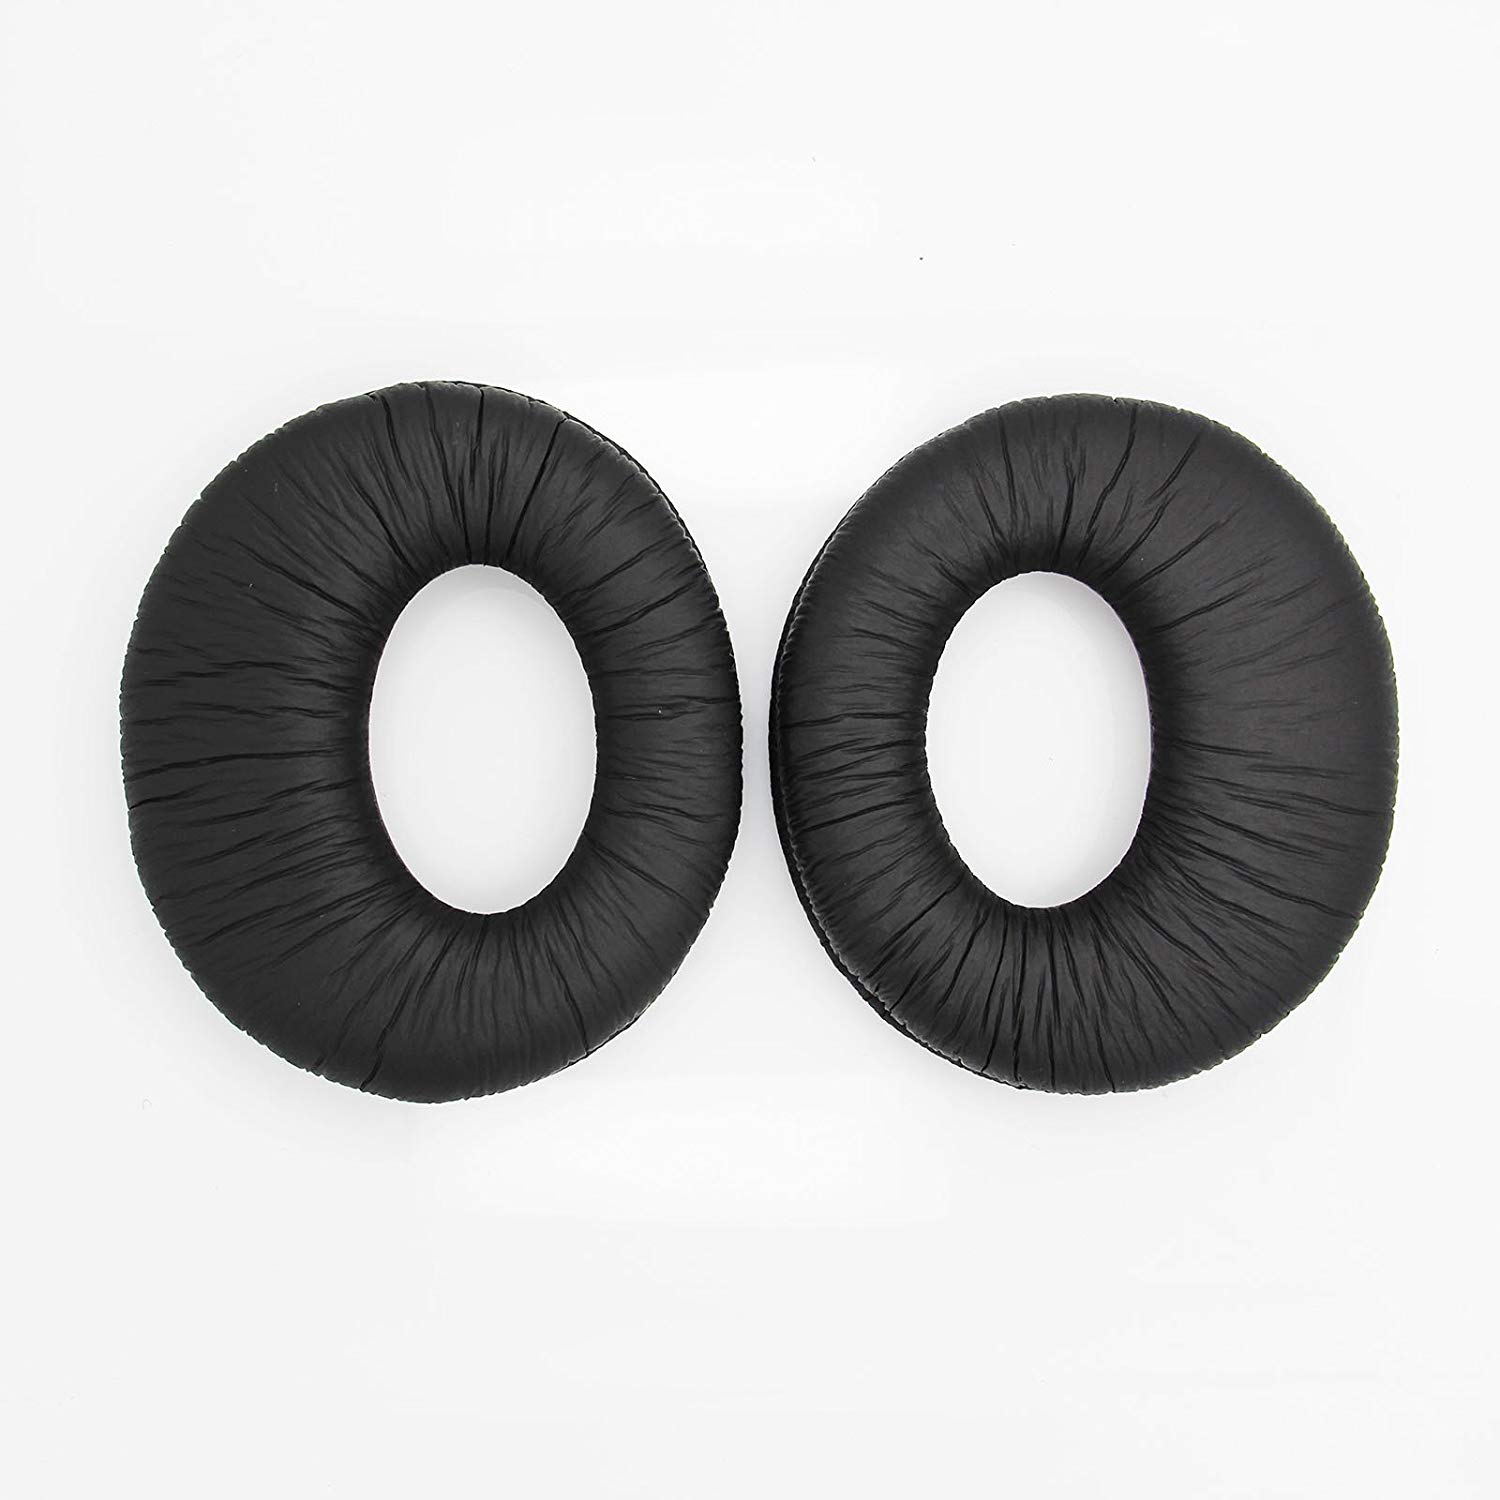 New Replacement Ear Pads Cushion For Sony MDR-RF970R RF970RK 960R MDR-RF925 RF925RK Headphones (Black)